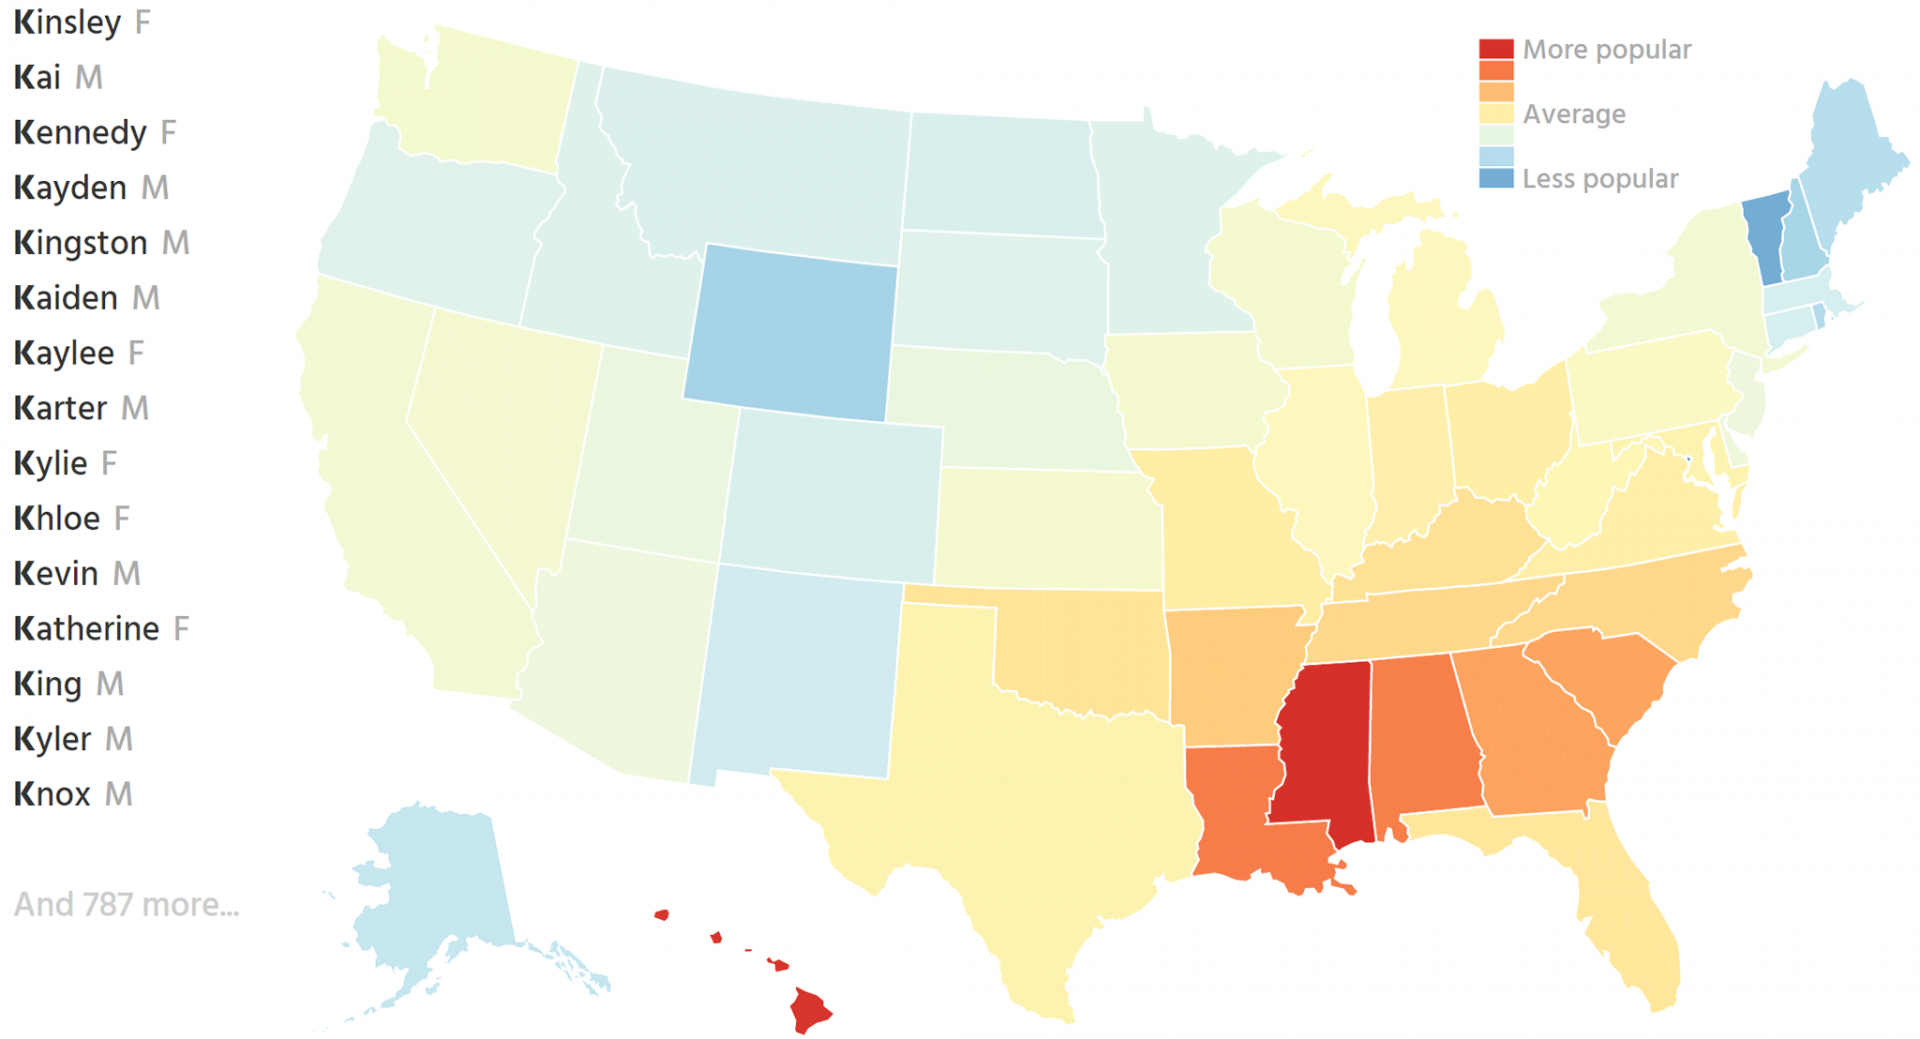 Map of US states shaded by the popularity of names starting with K